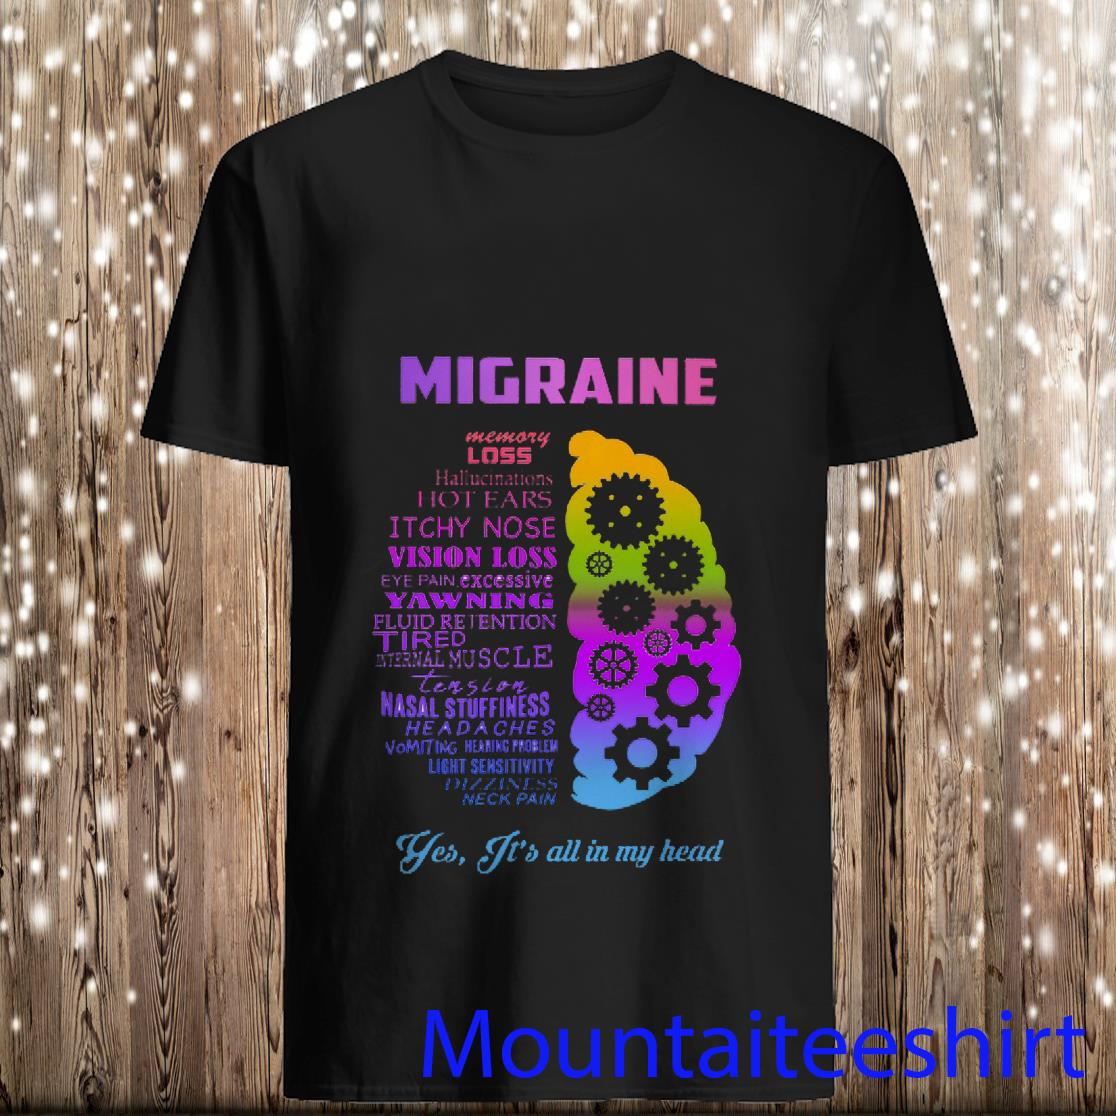 Migraine Memory Loss Hallucinations Hot Ears Itchy Nose Shirt